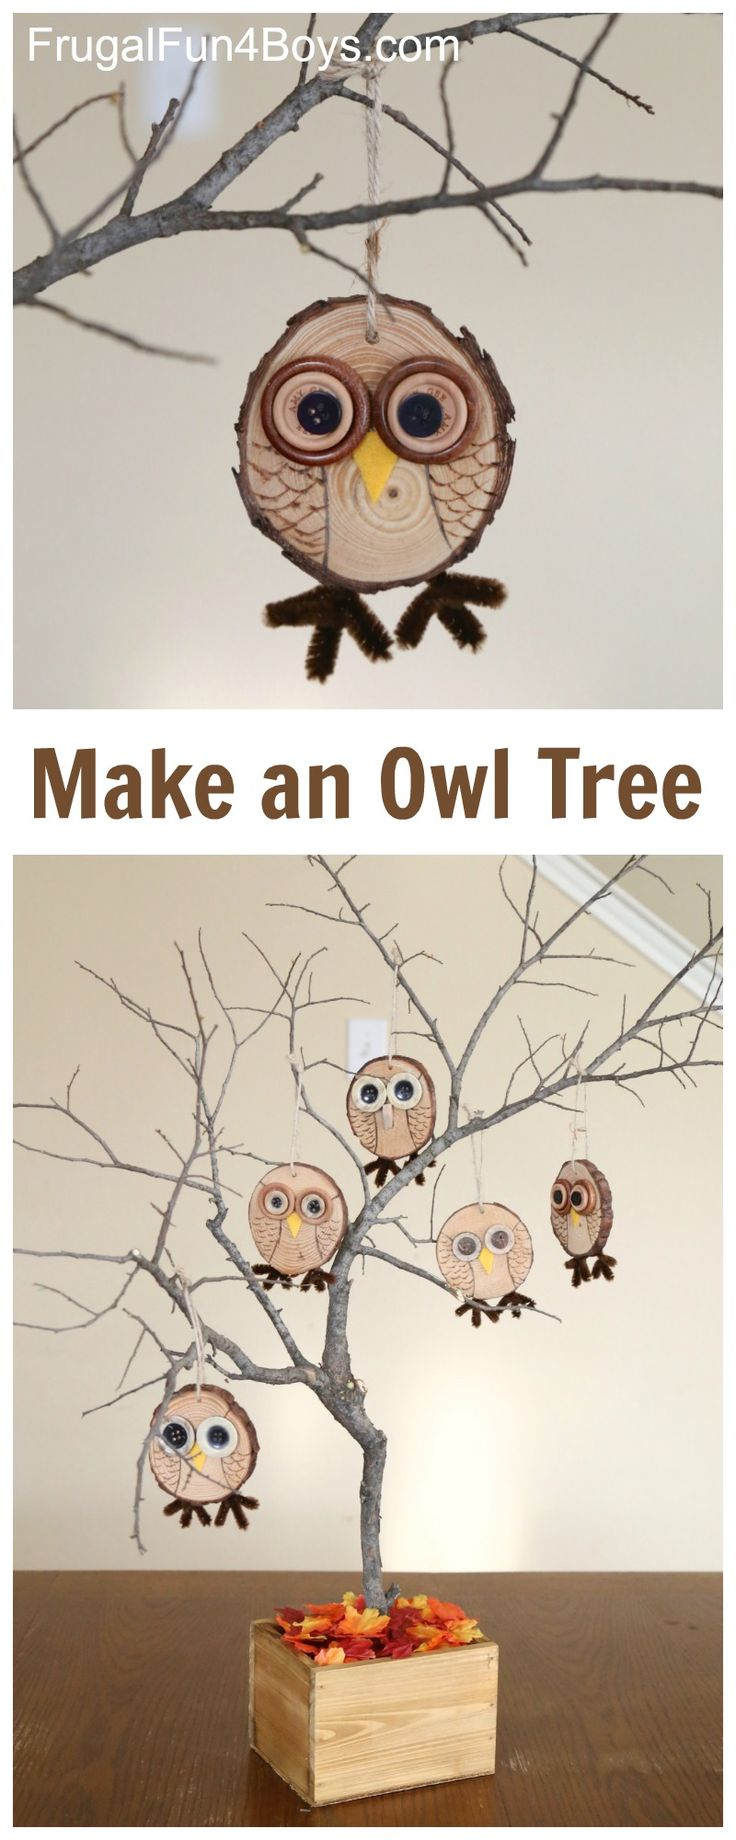 Owl Craft - How to make adorable wood slice owl ornaments.  Love the tree idea!  Fall decor that kids can help make.